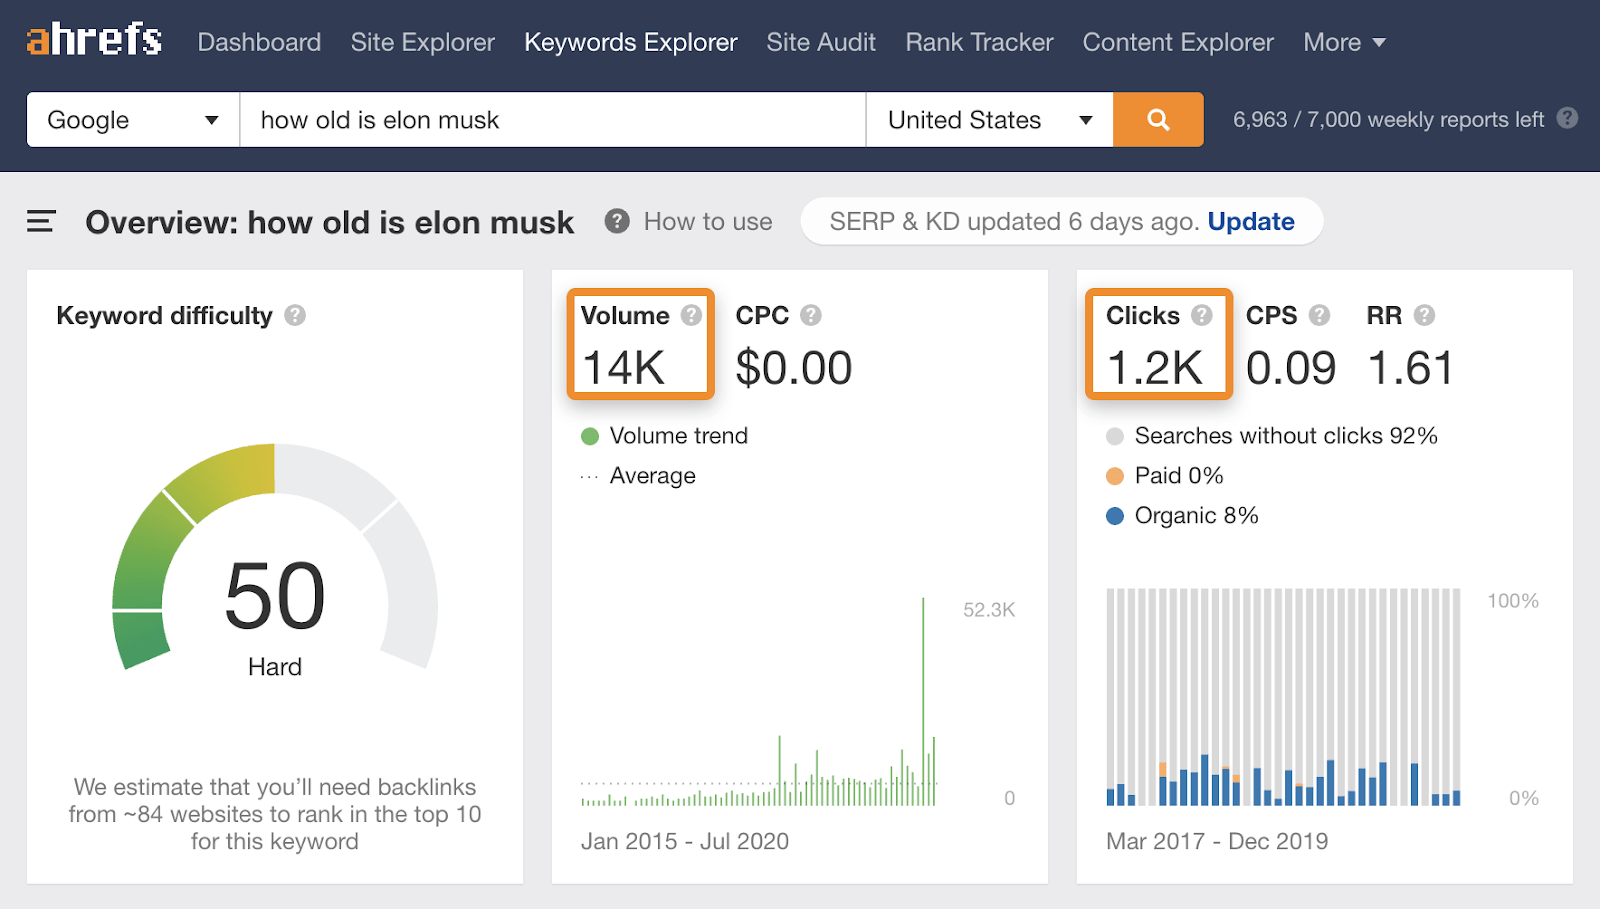 4 how old is elon musk keywords explorer